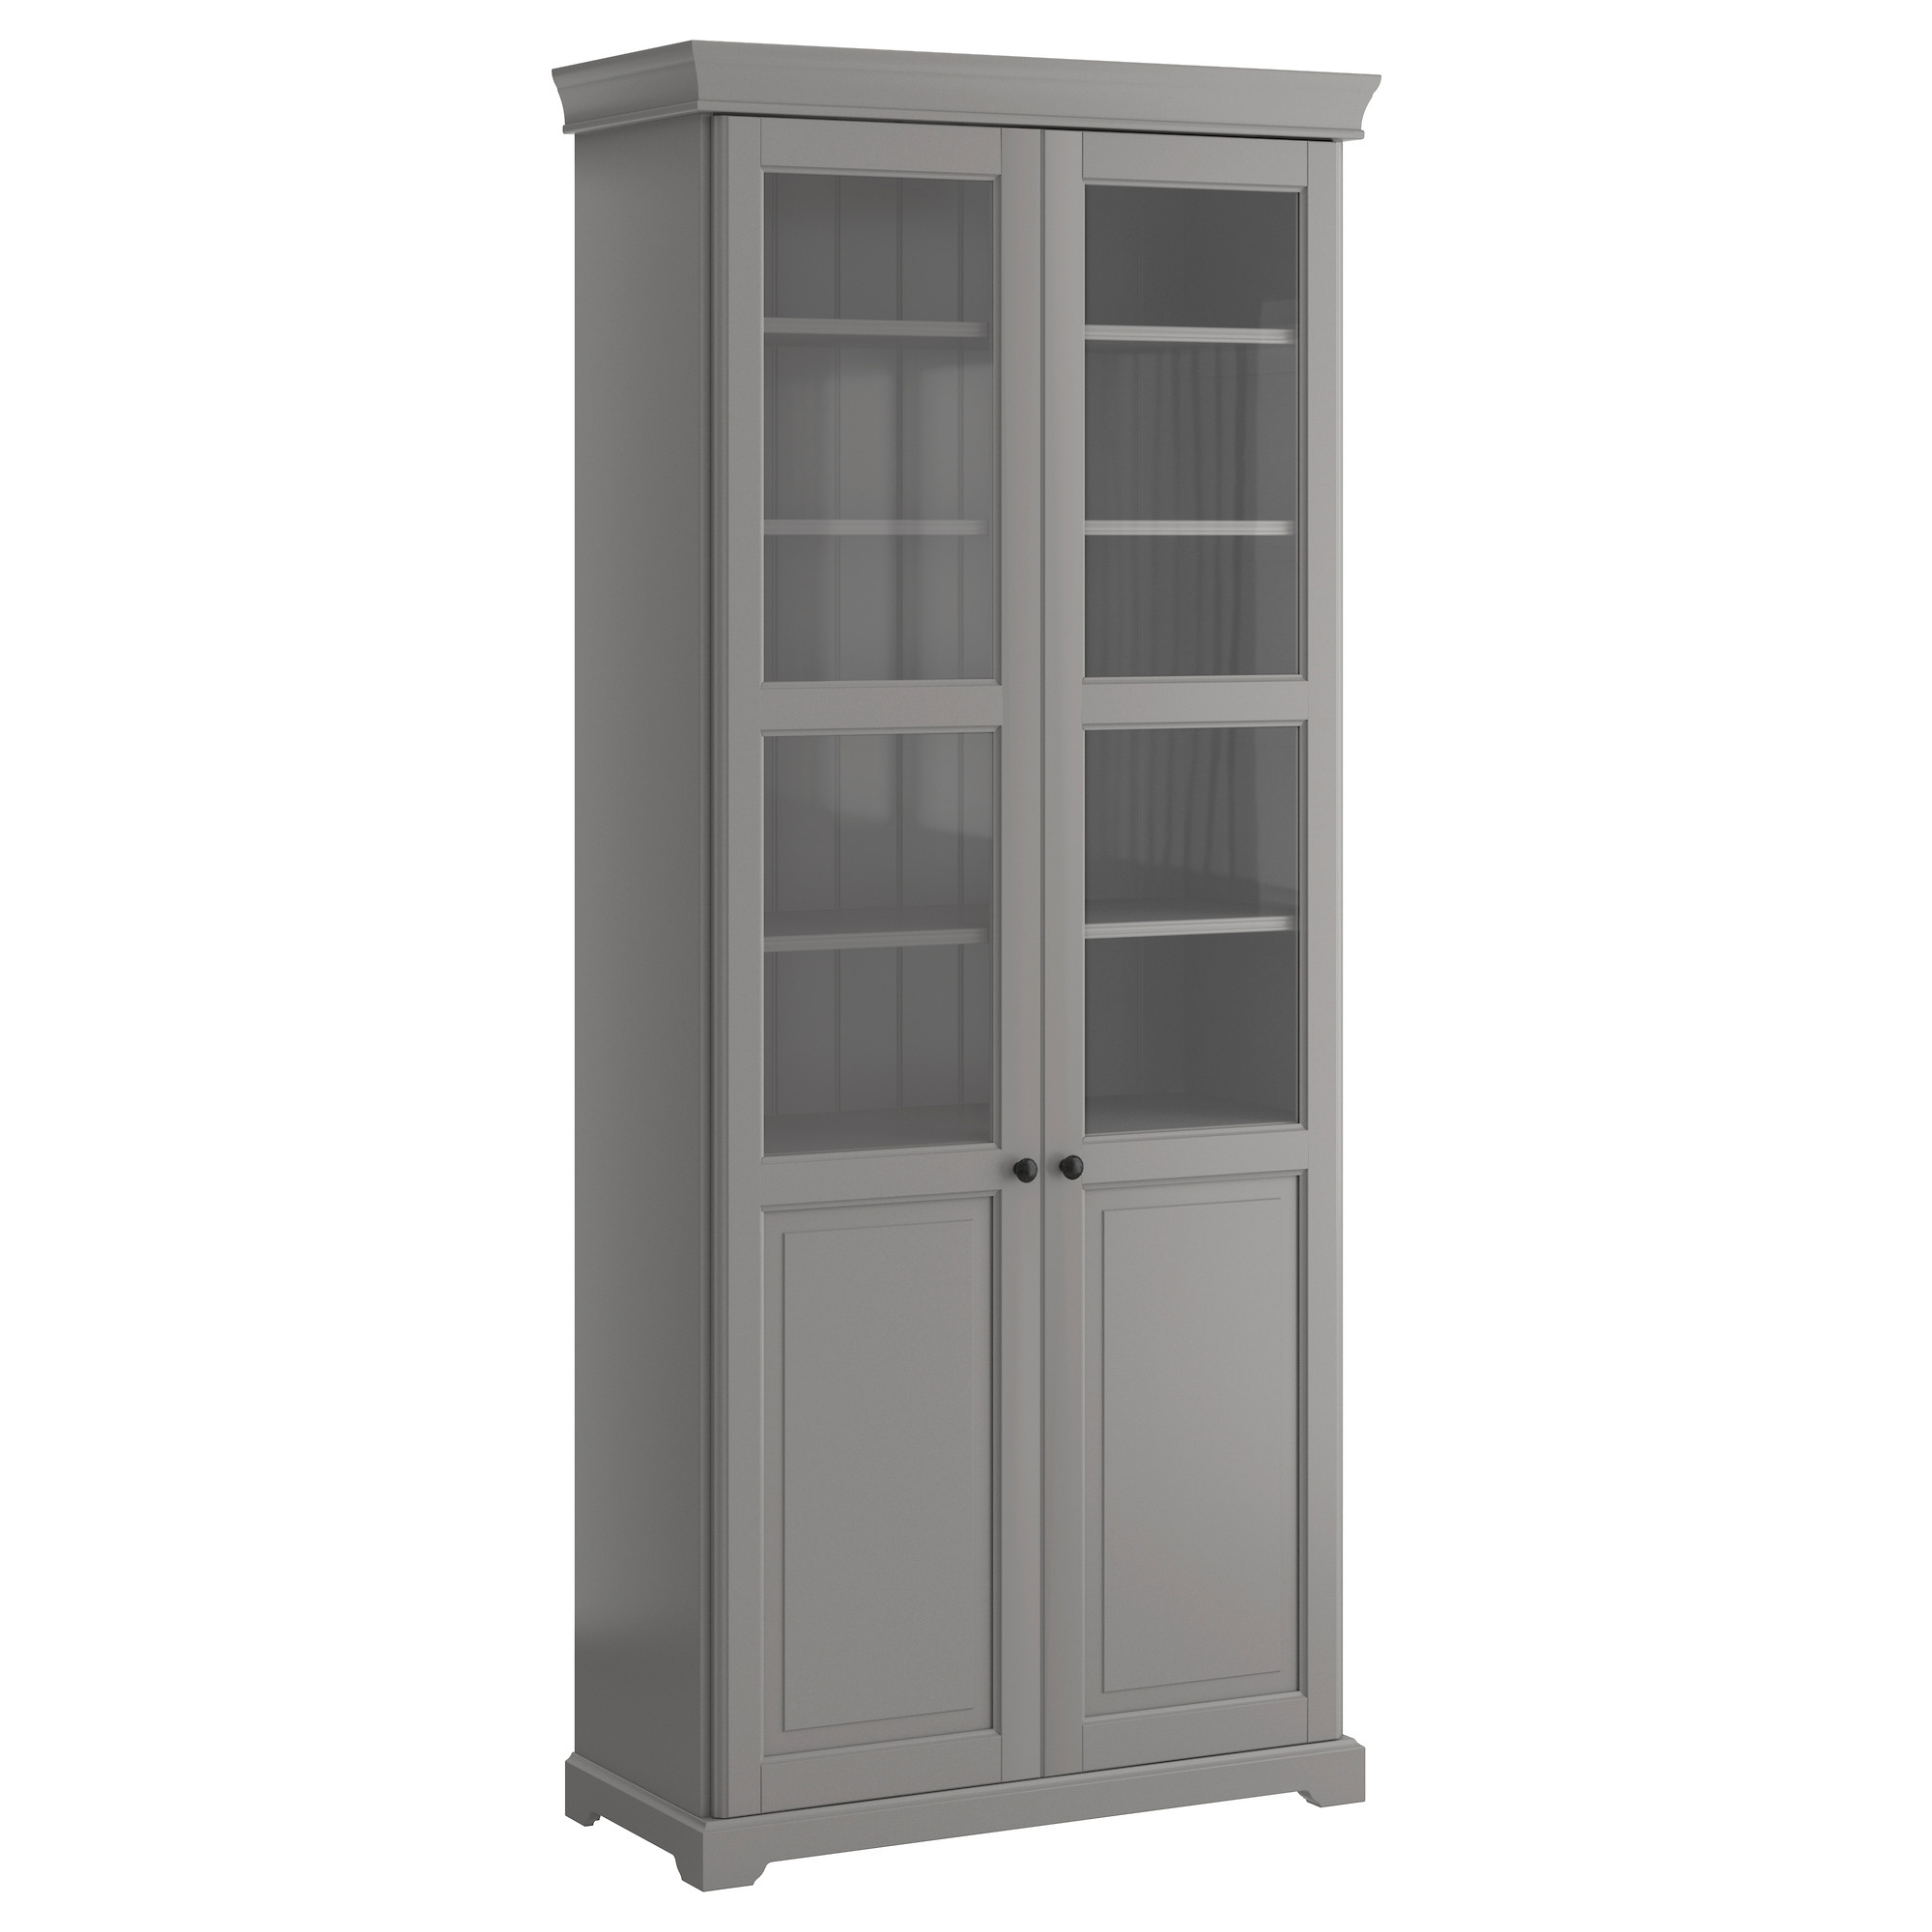 Glass Bookcases Inside Widely Used Liatorp Bookcase With Glass Doors – Gray – Ikea (View 5 of 15)